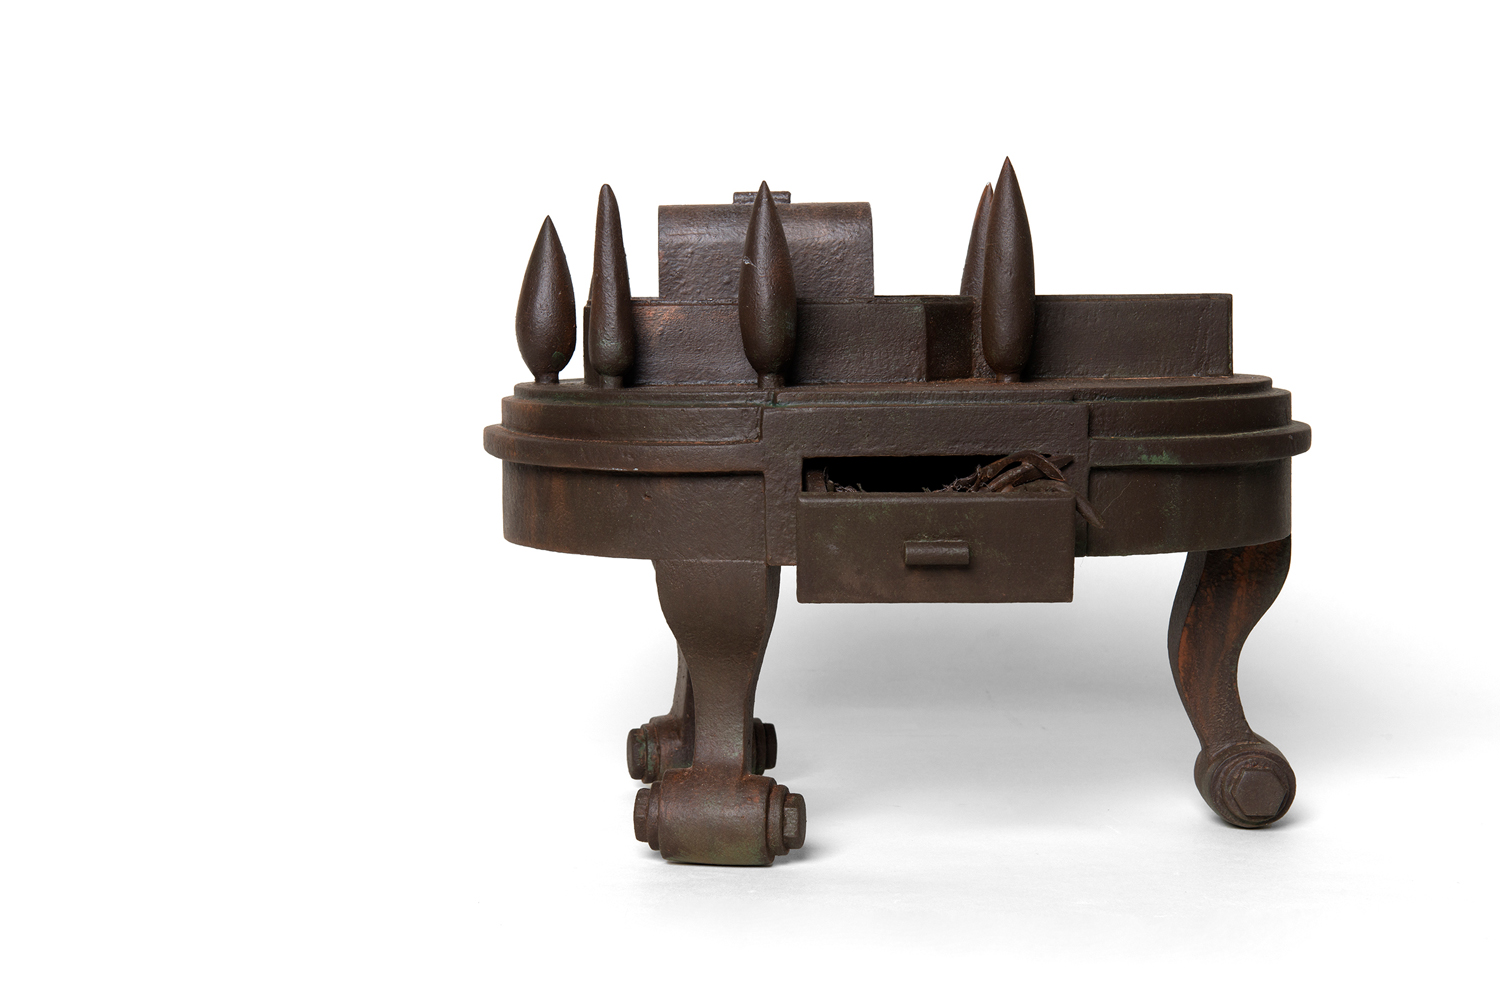 17. 'The Ark of the Raiment', Stuart Elliott, wood, paint, $1,200  Photo: Eva Fernandez